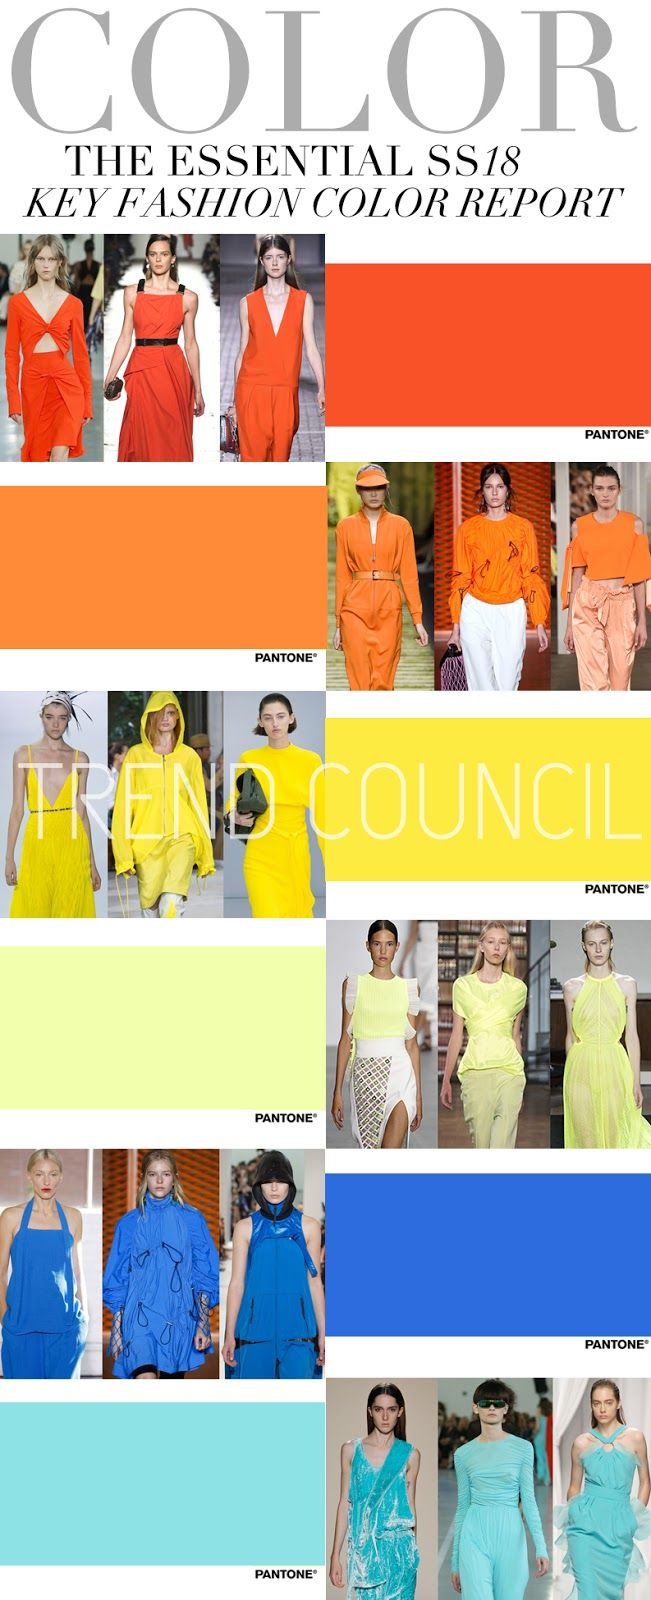 TRENDS // TREND COUNCIL - KEY FASHION COLORS . SS 2018